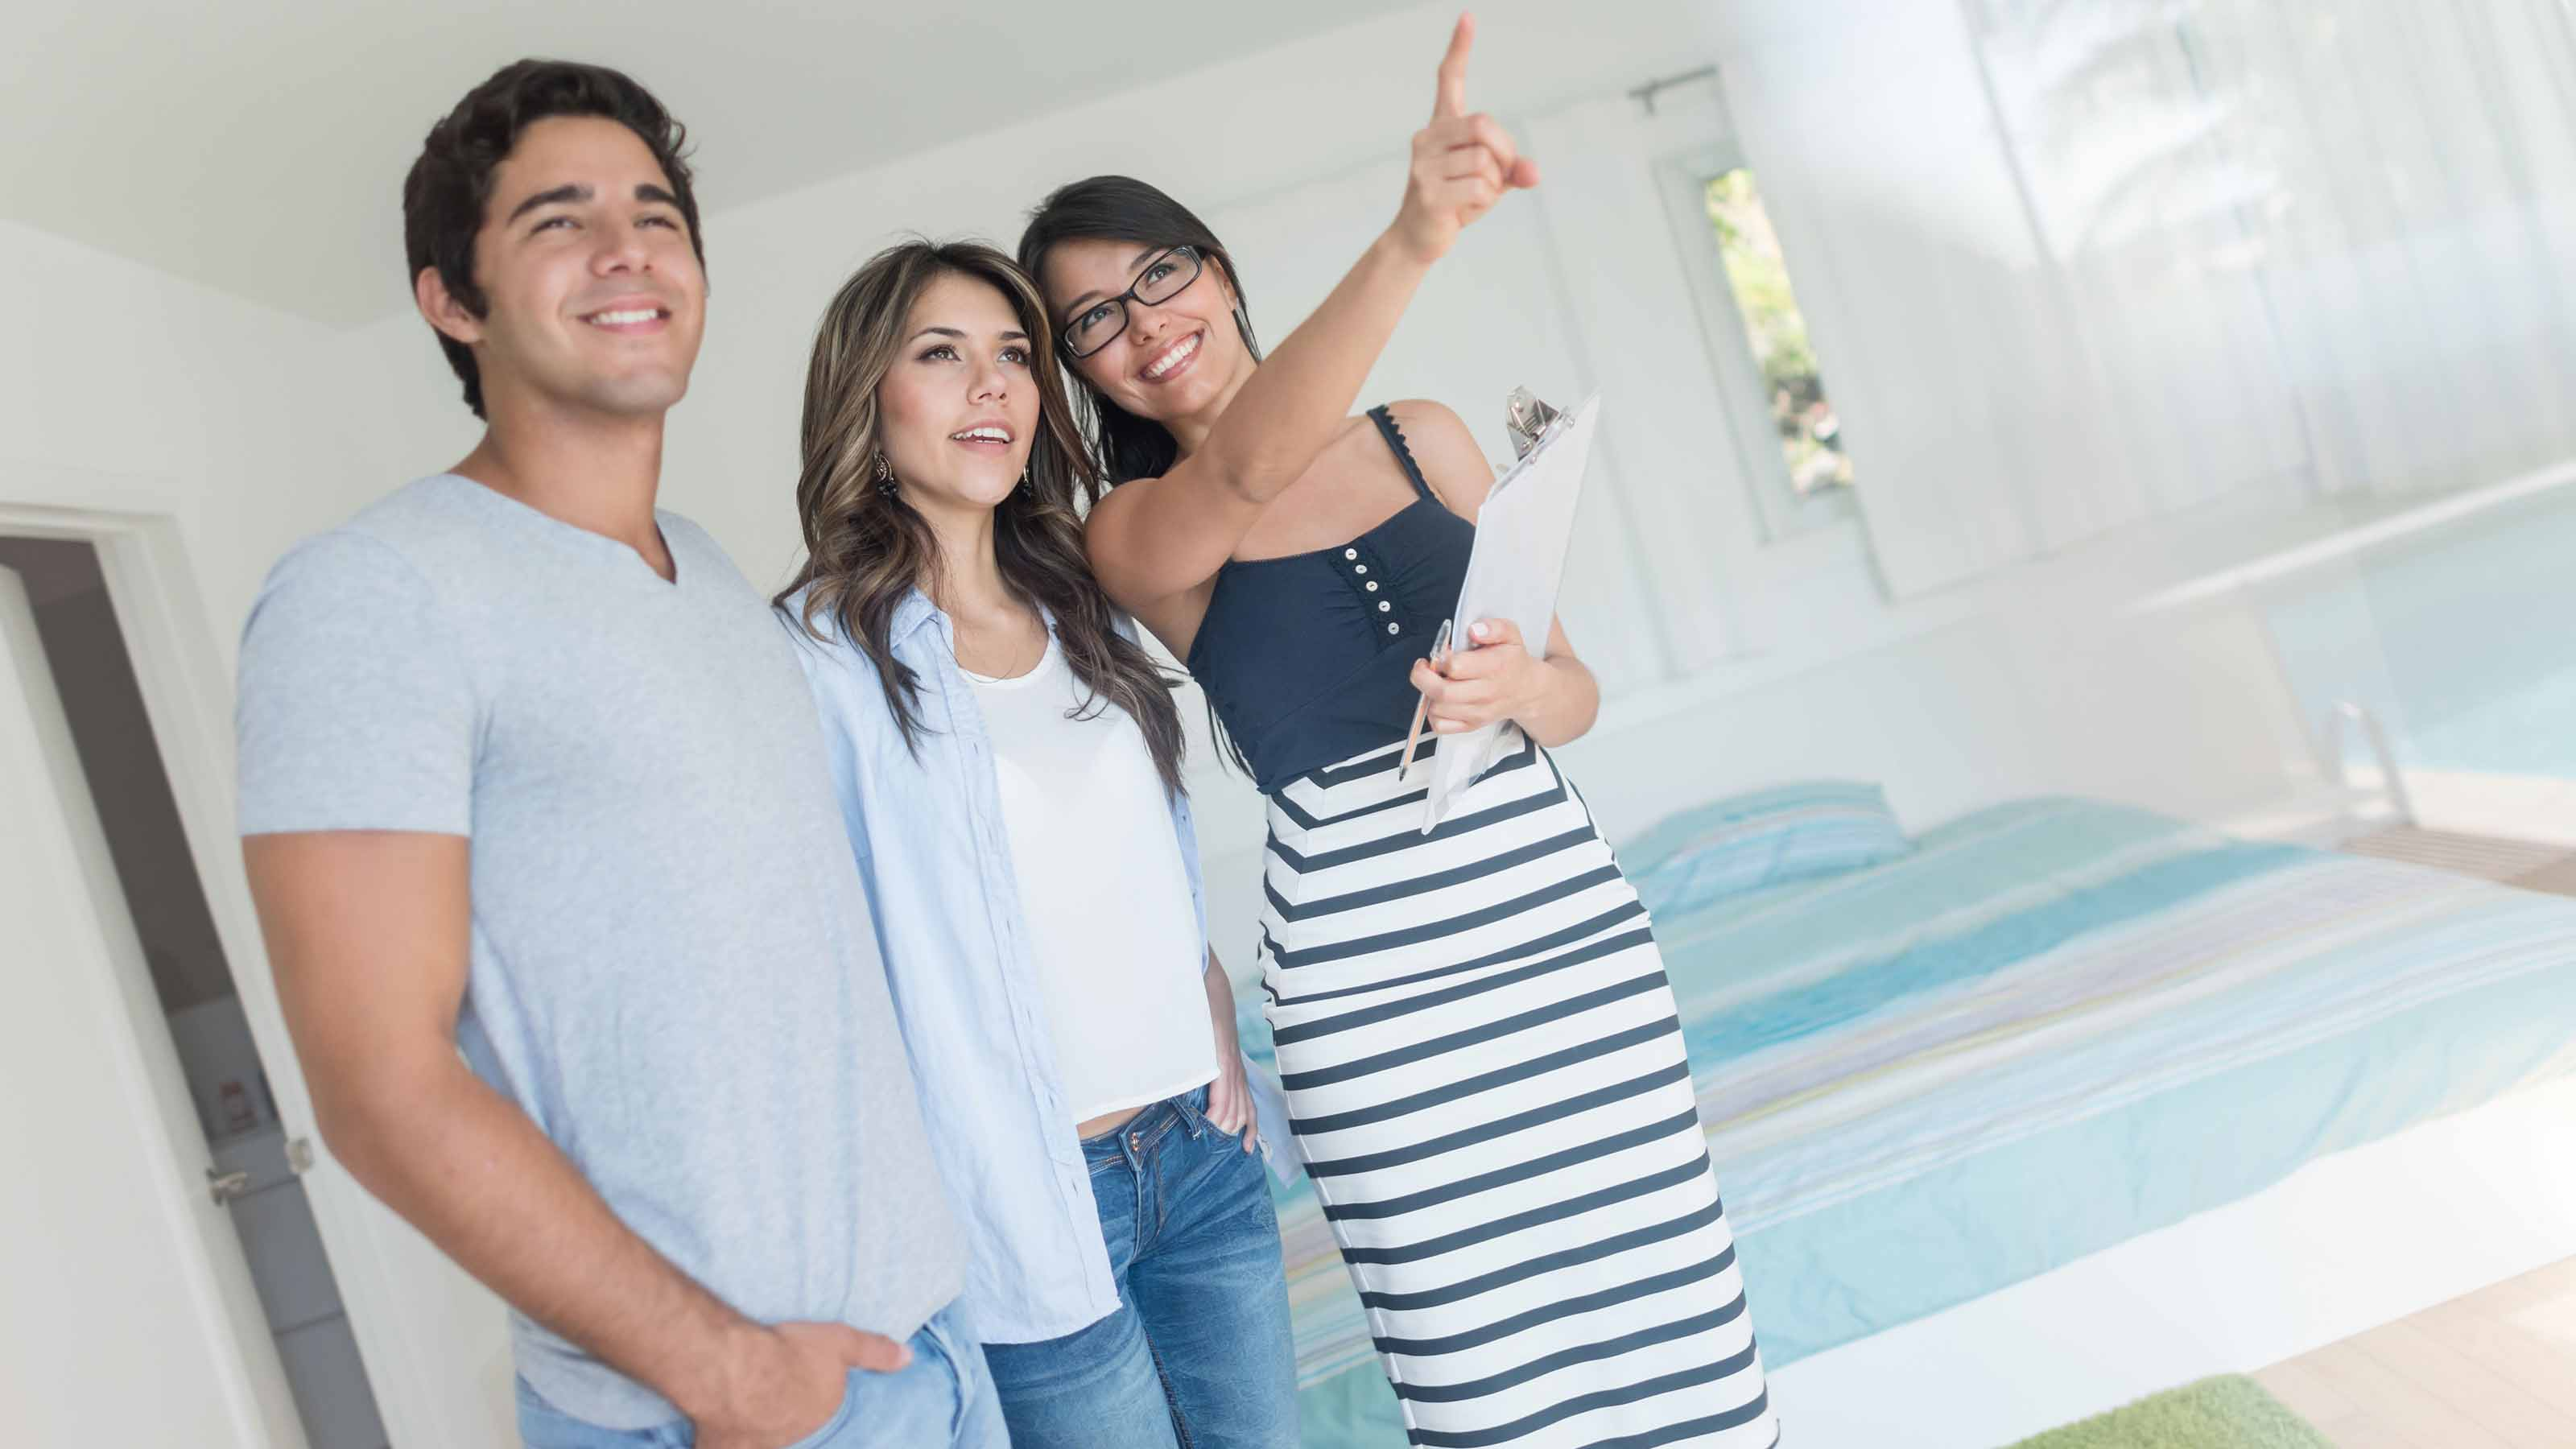 Find The Best Information About Buying A Home